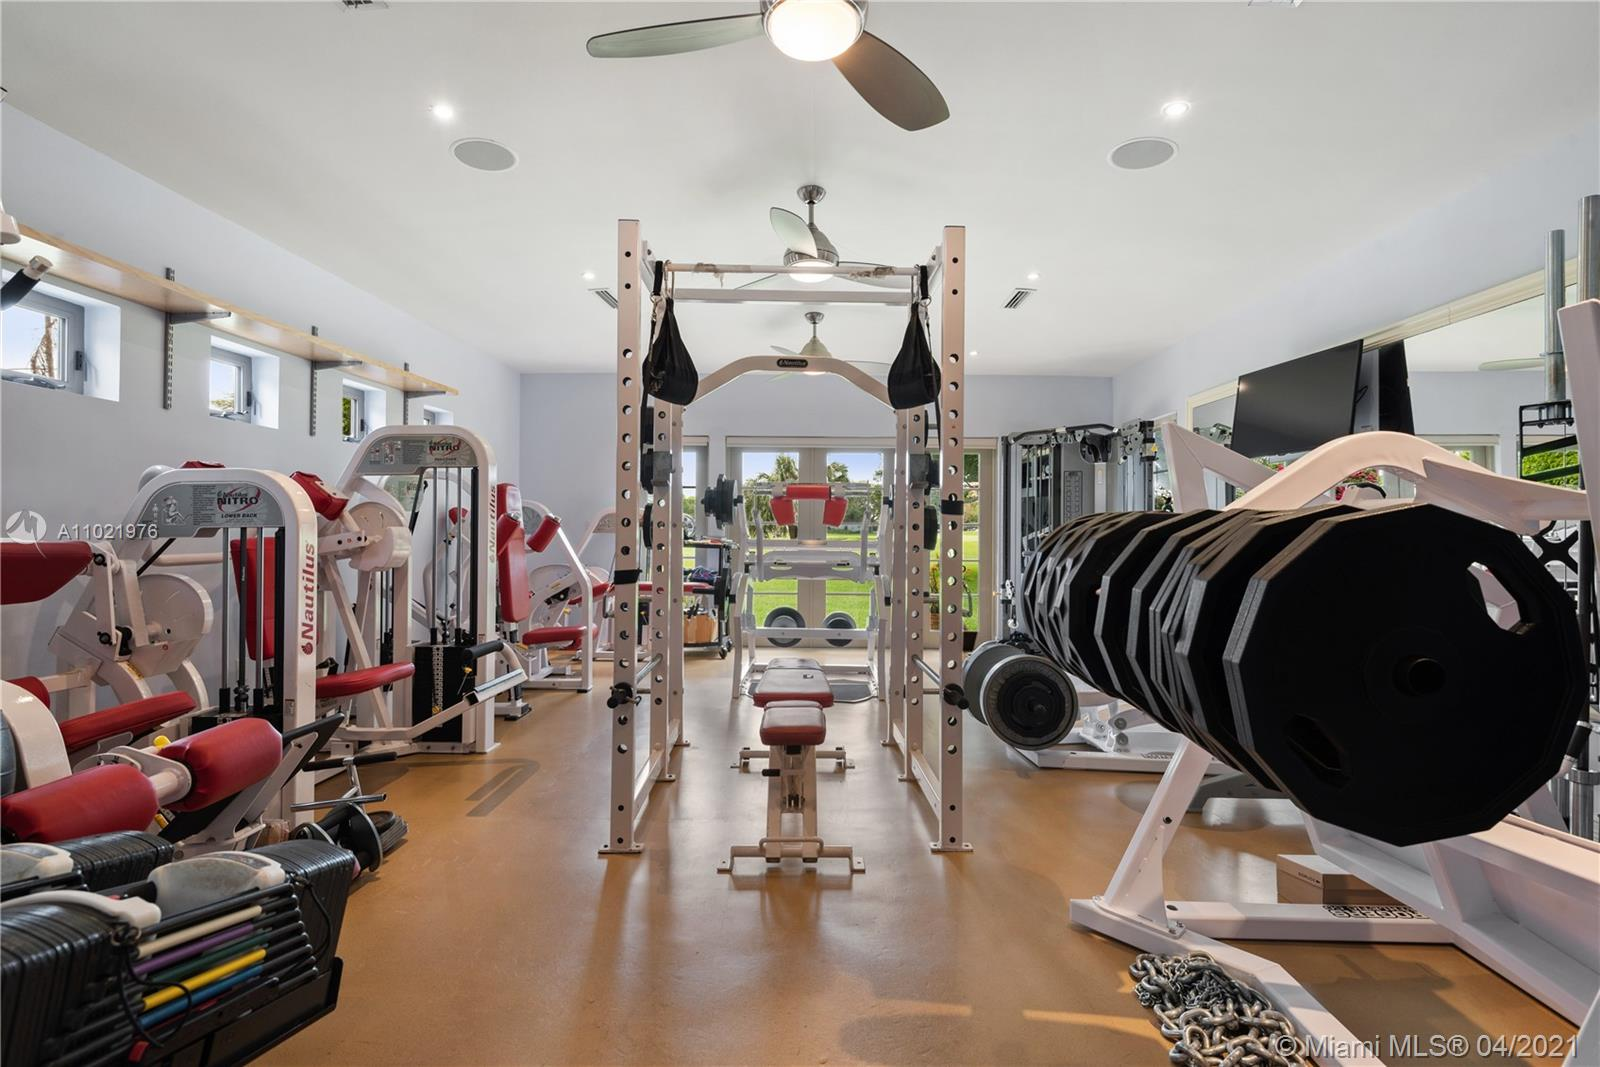 Fully Equipped Gym (can be 2nd Master Bedroom).